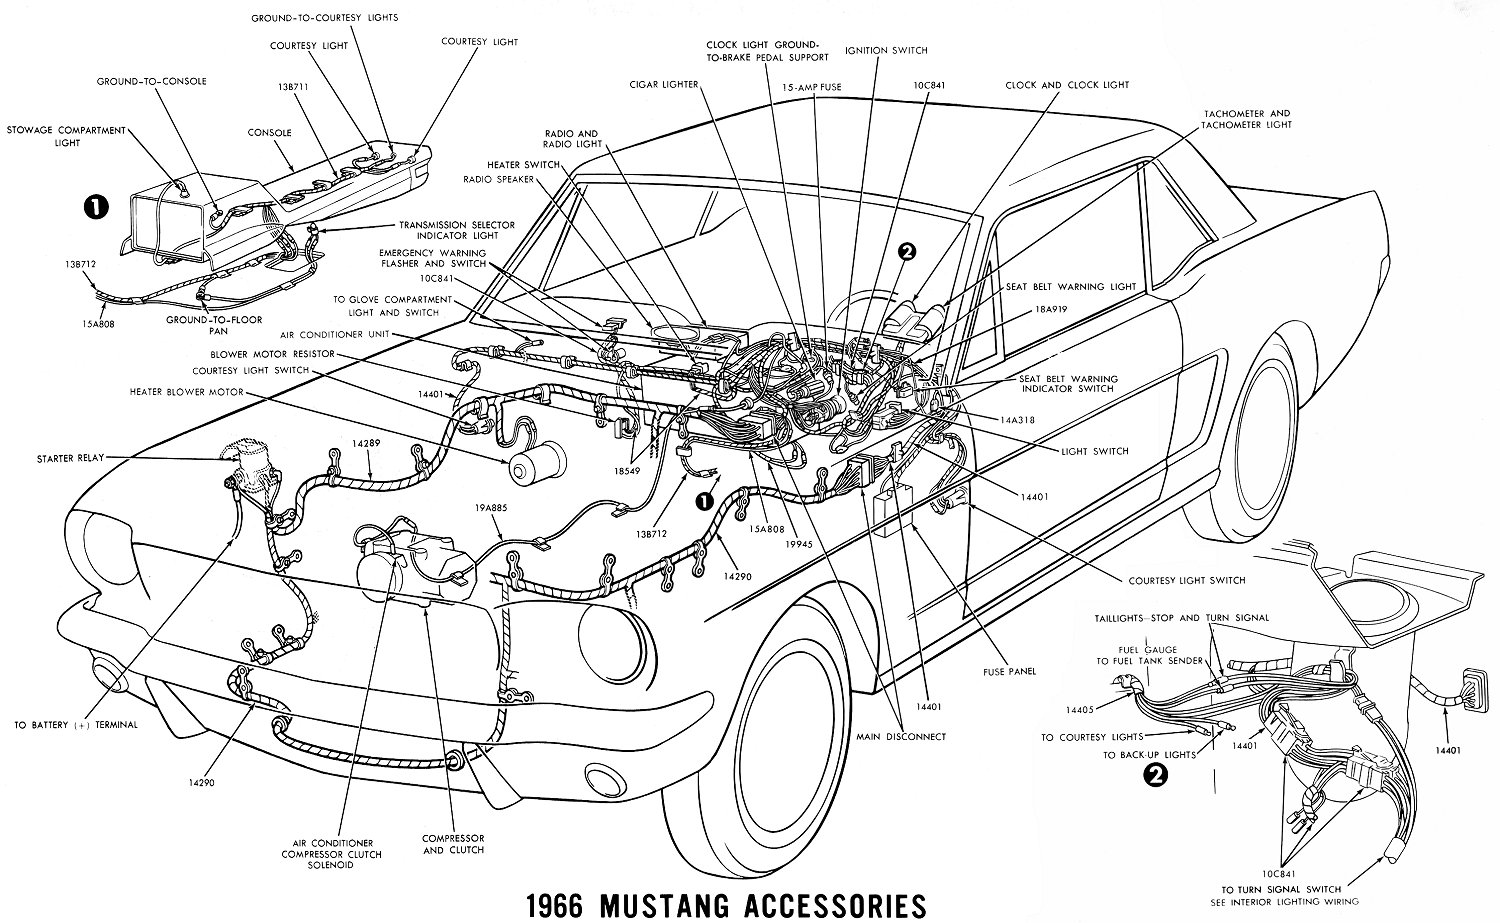 ... 66 accessories details · 66 accessories schematic ...